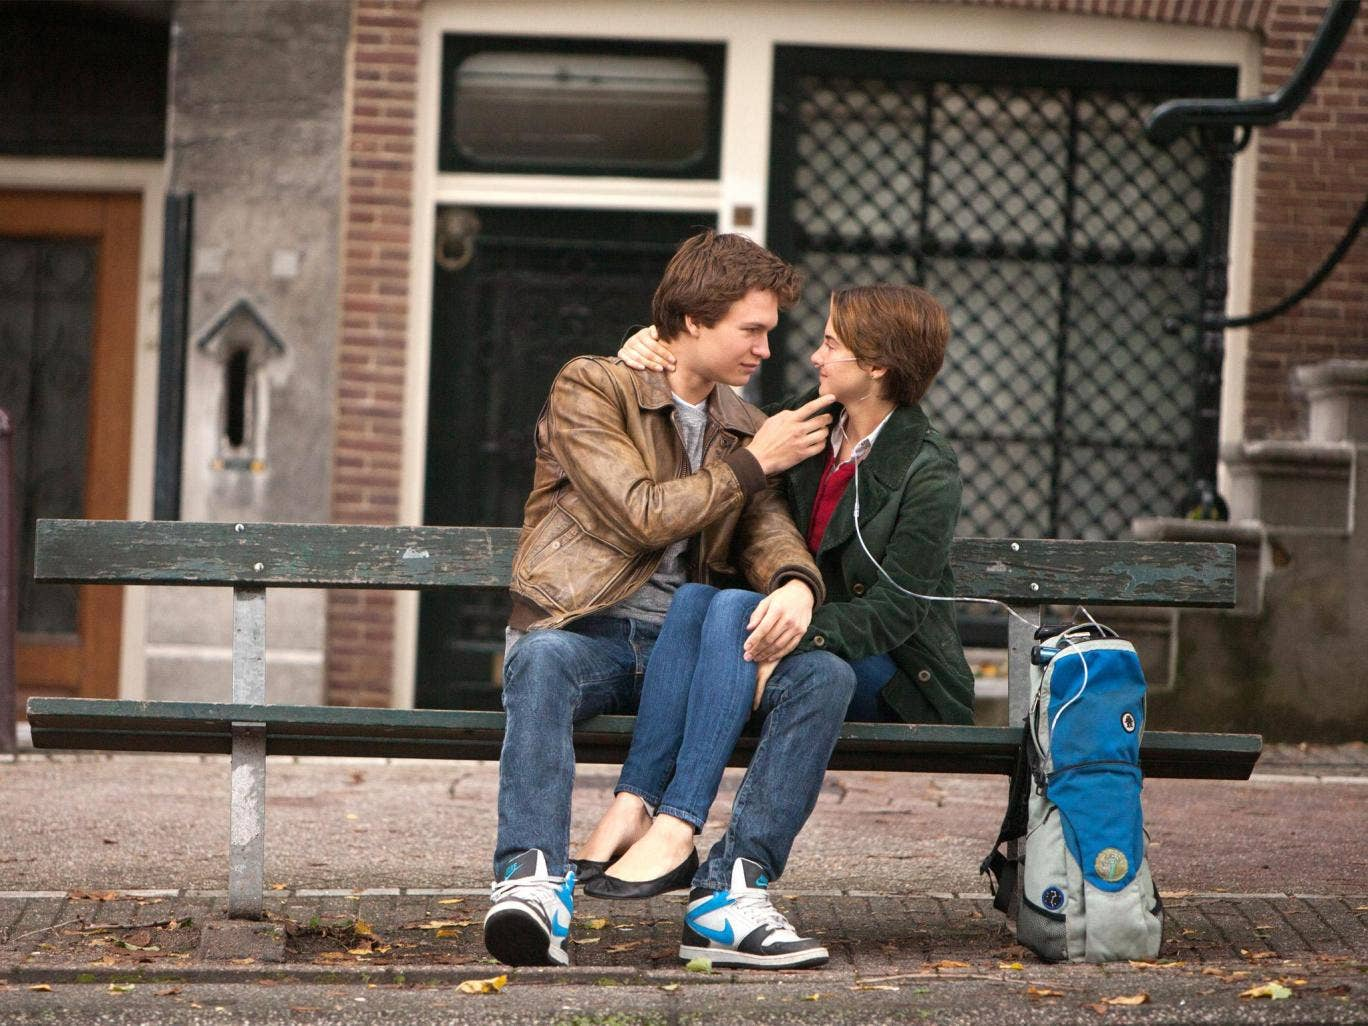 A scene from The Fault in Our Stars: John Green's sixth novel